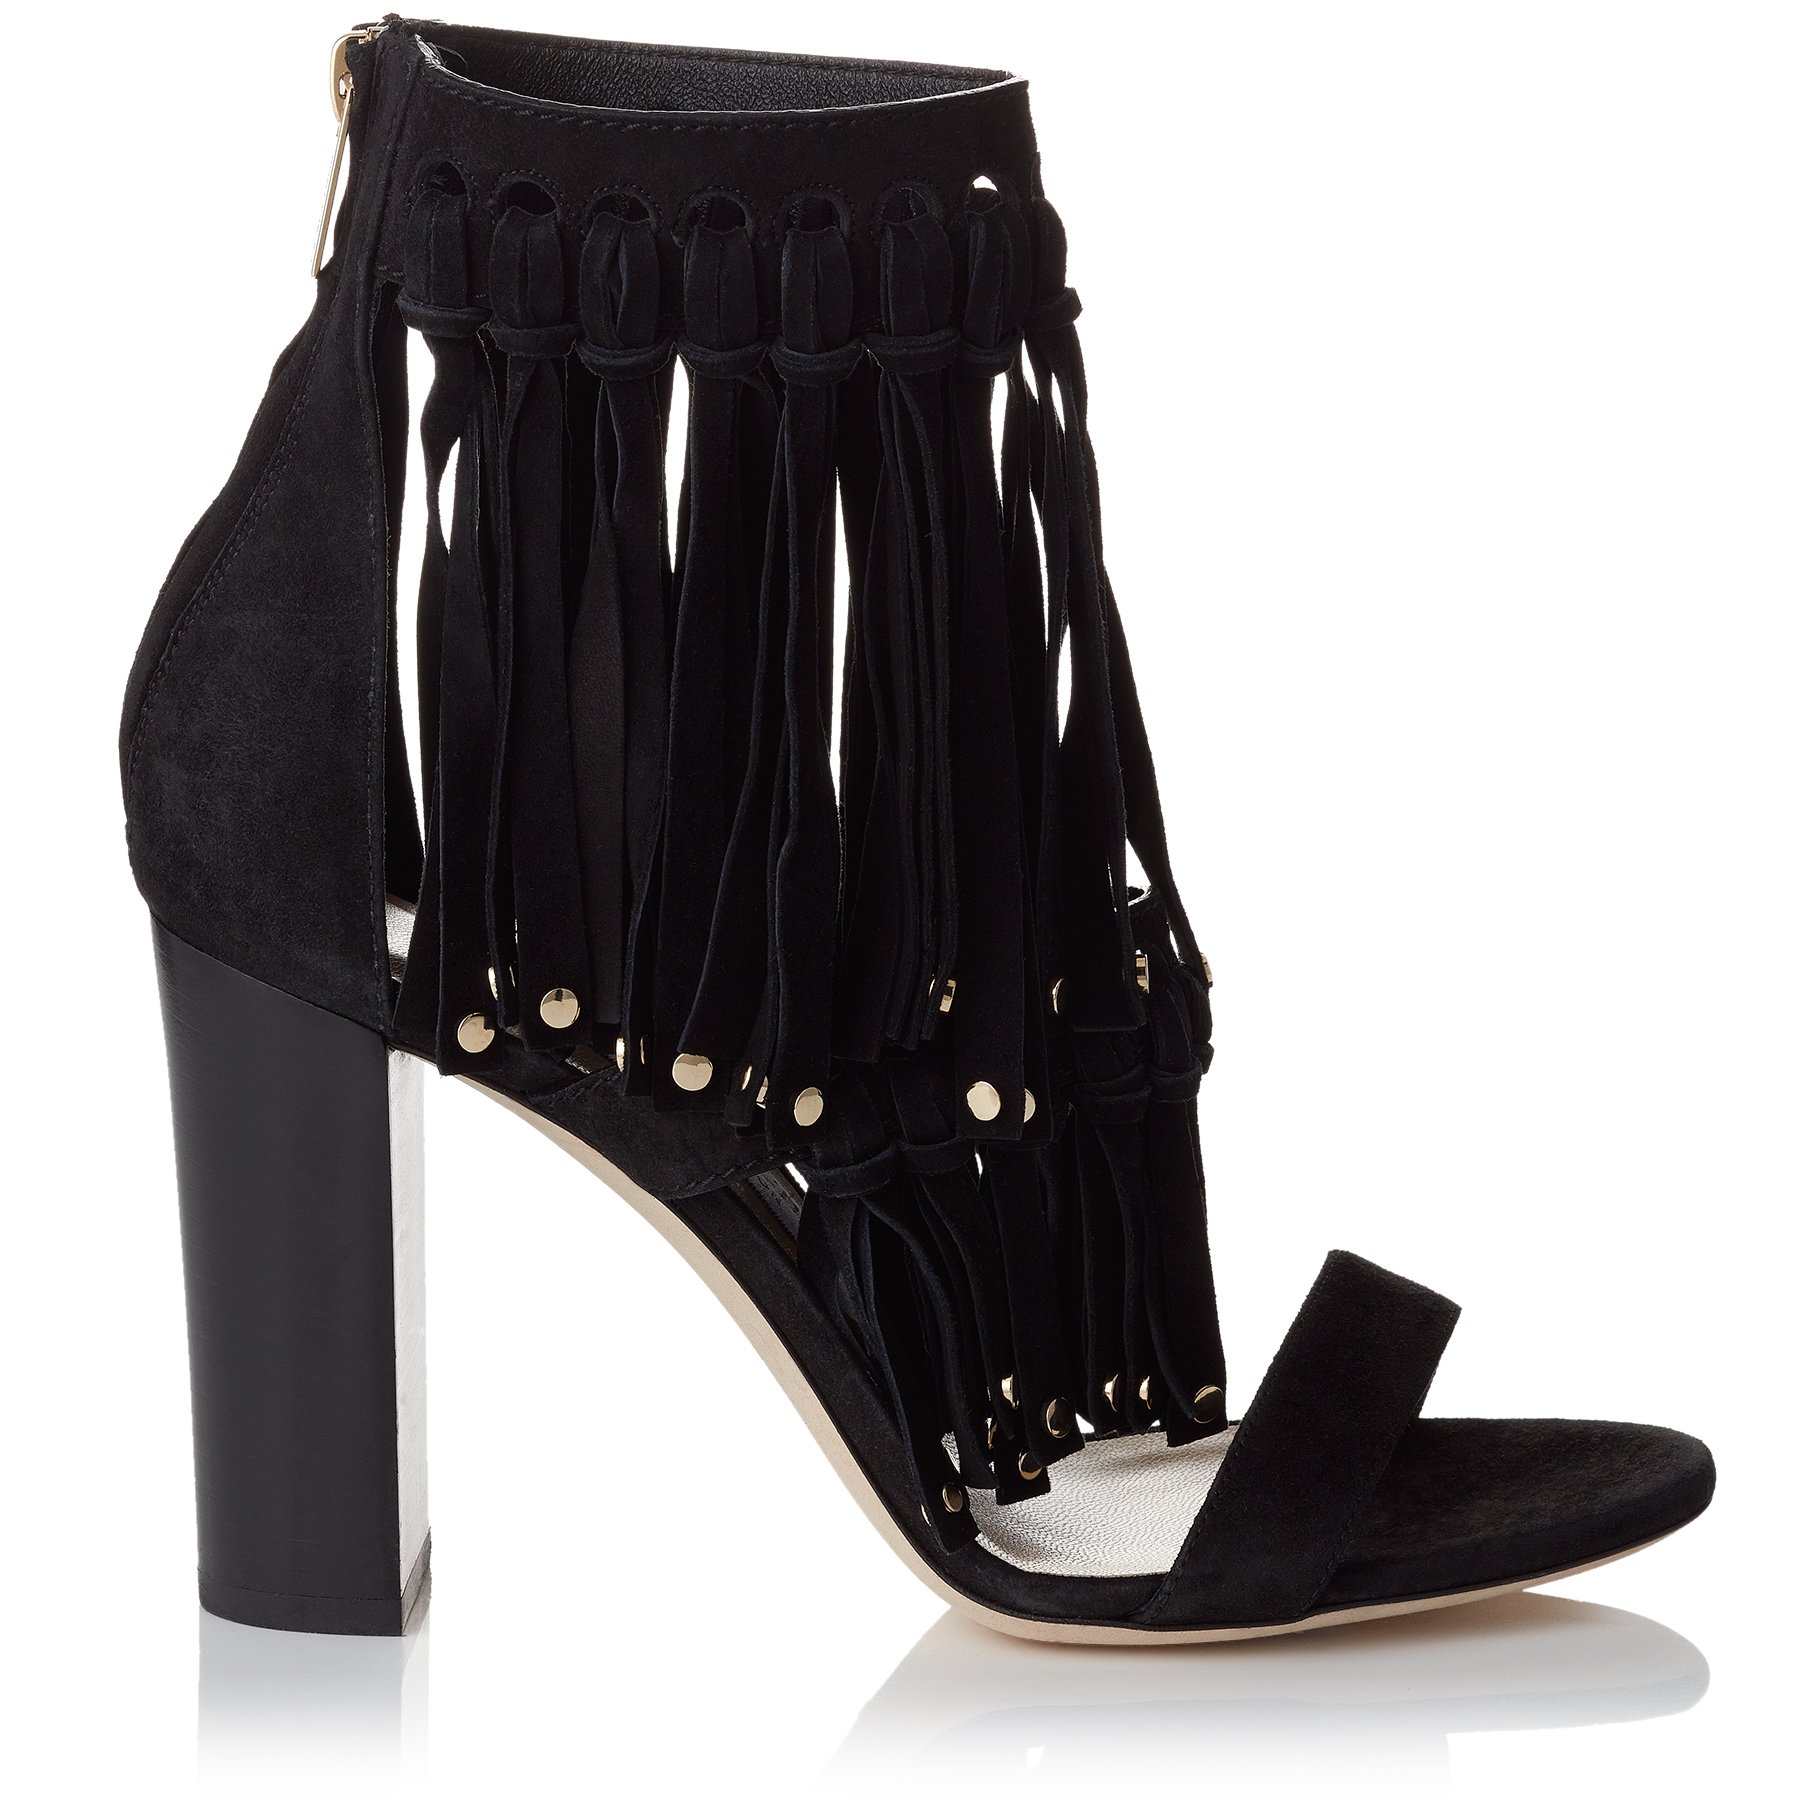 MALIA 95 Black Suede Sandals with Fringe Detailing and Studs by Jimmy Choo